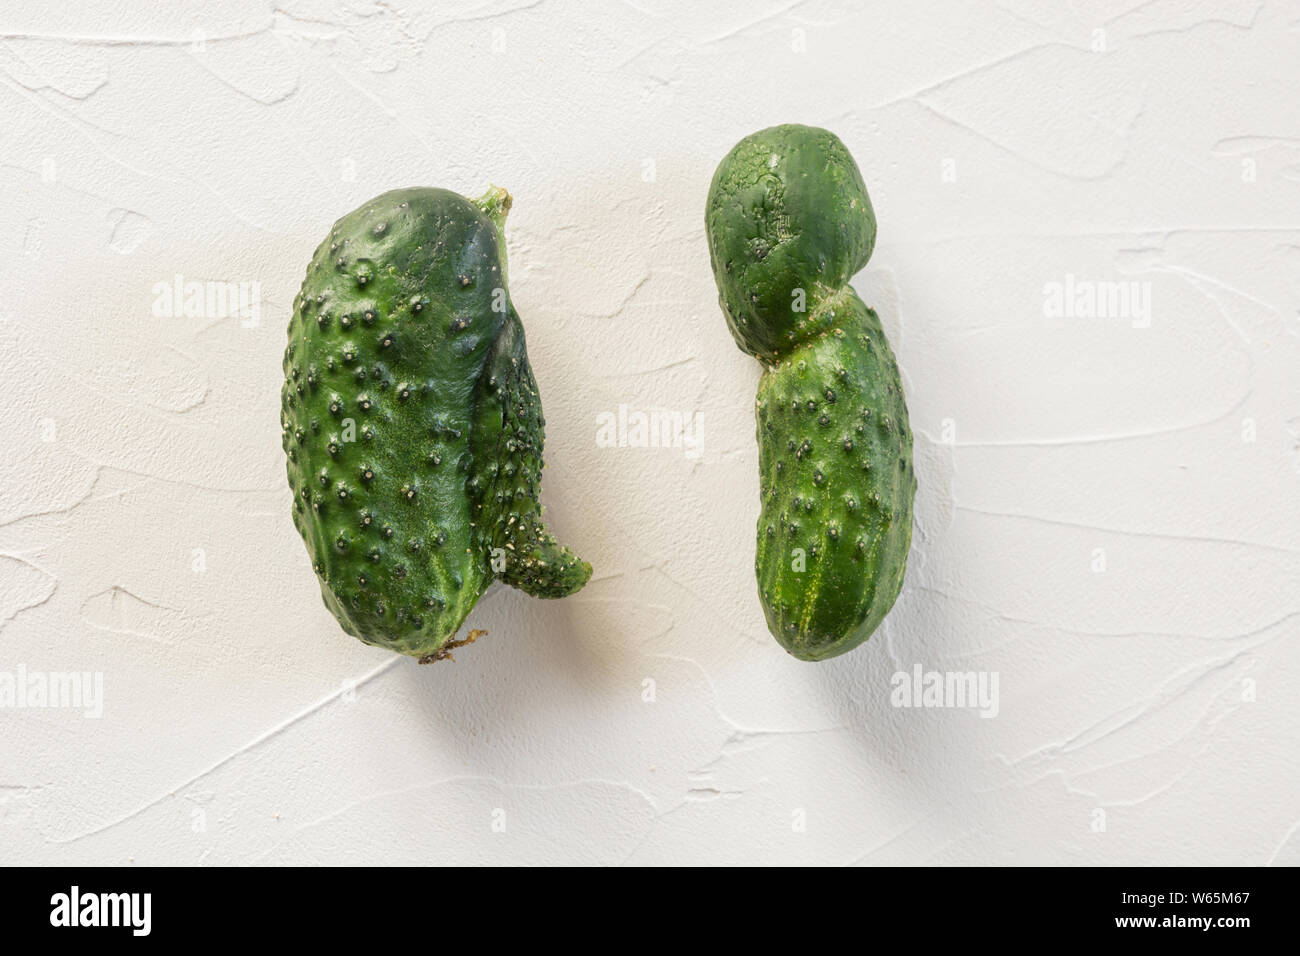 Ugly organic abnormal two cucumber. Concept organic vegetables. Close up. Stock Photo